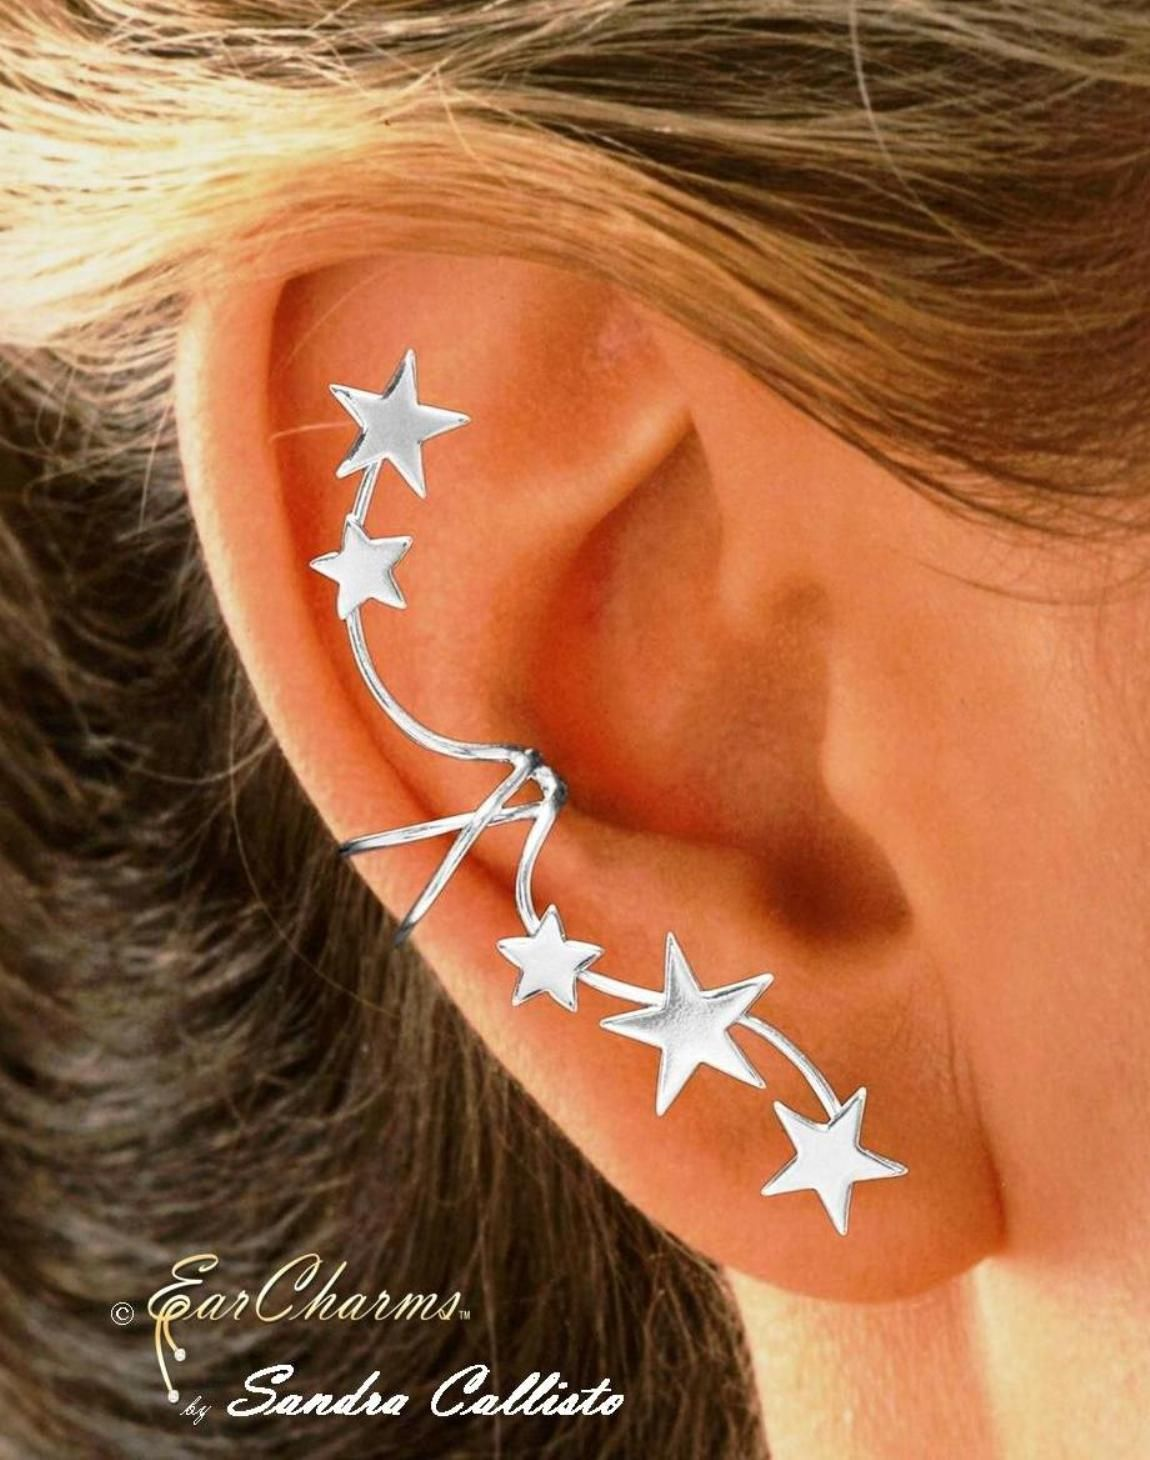 Pin by Ear Charms on 4th of July Ear Charms in 2019